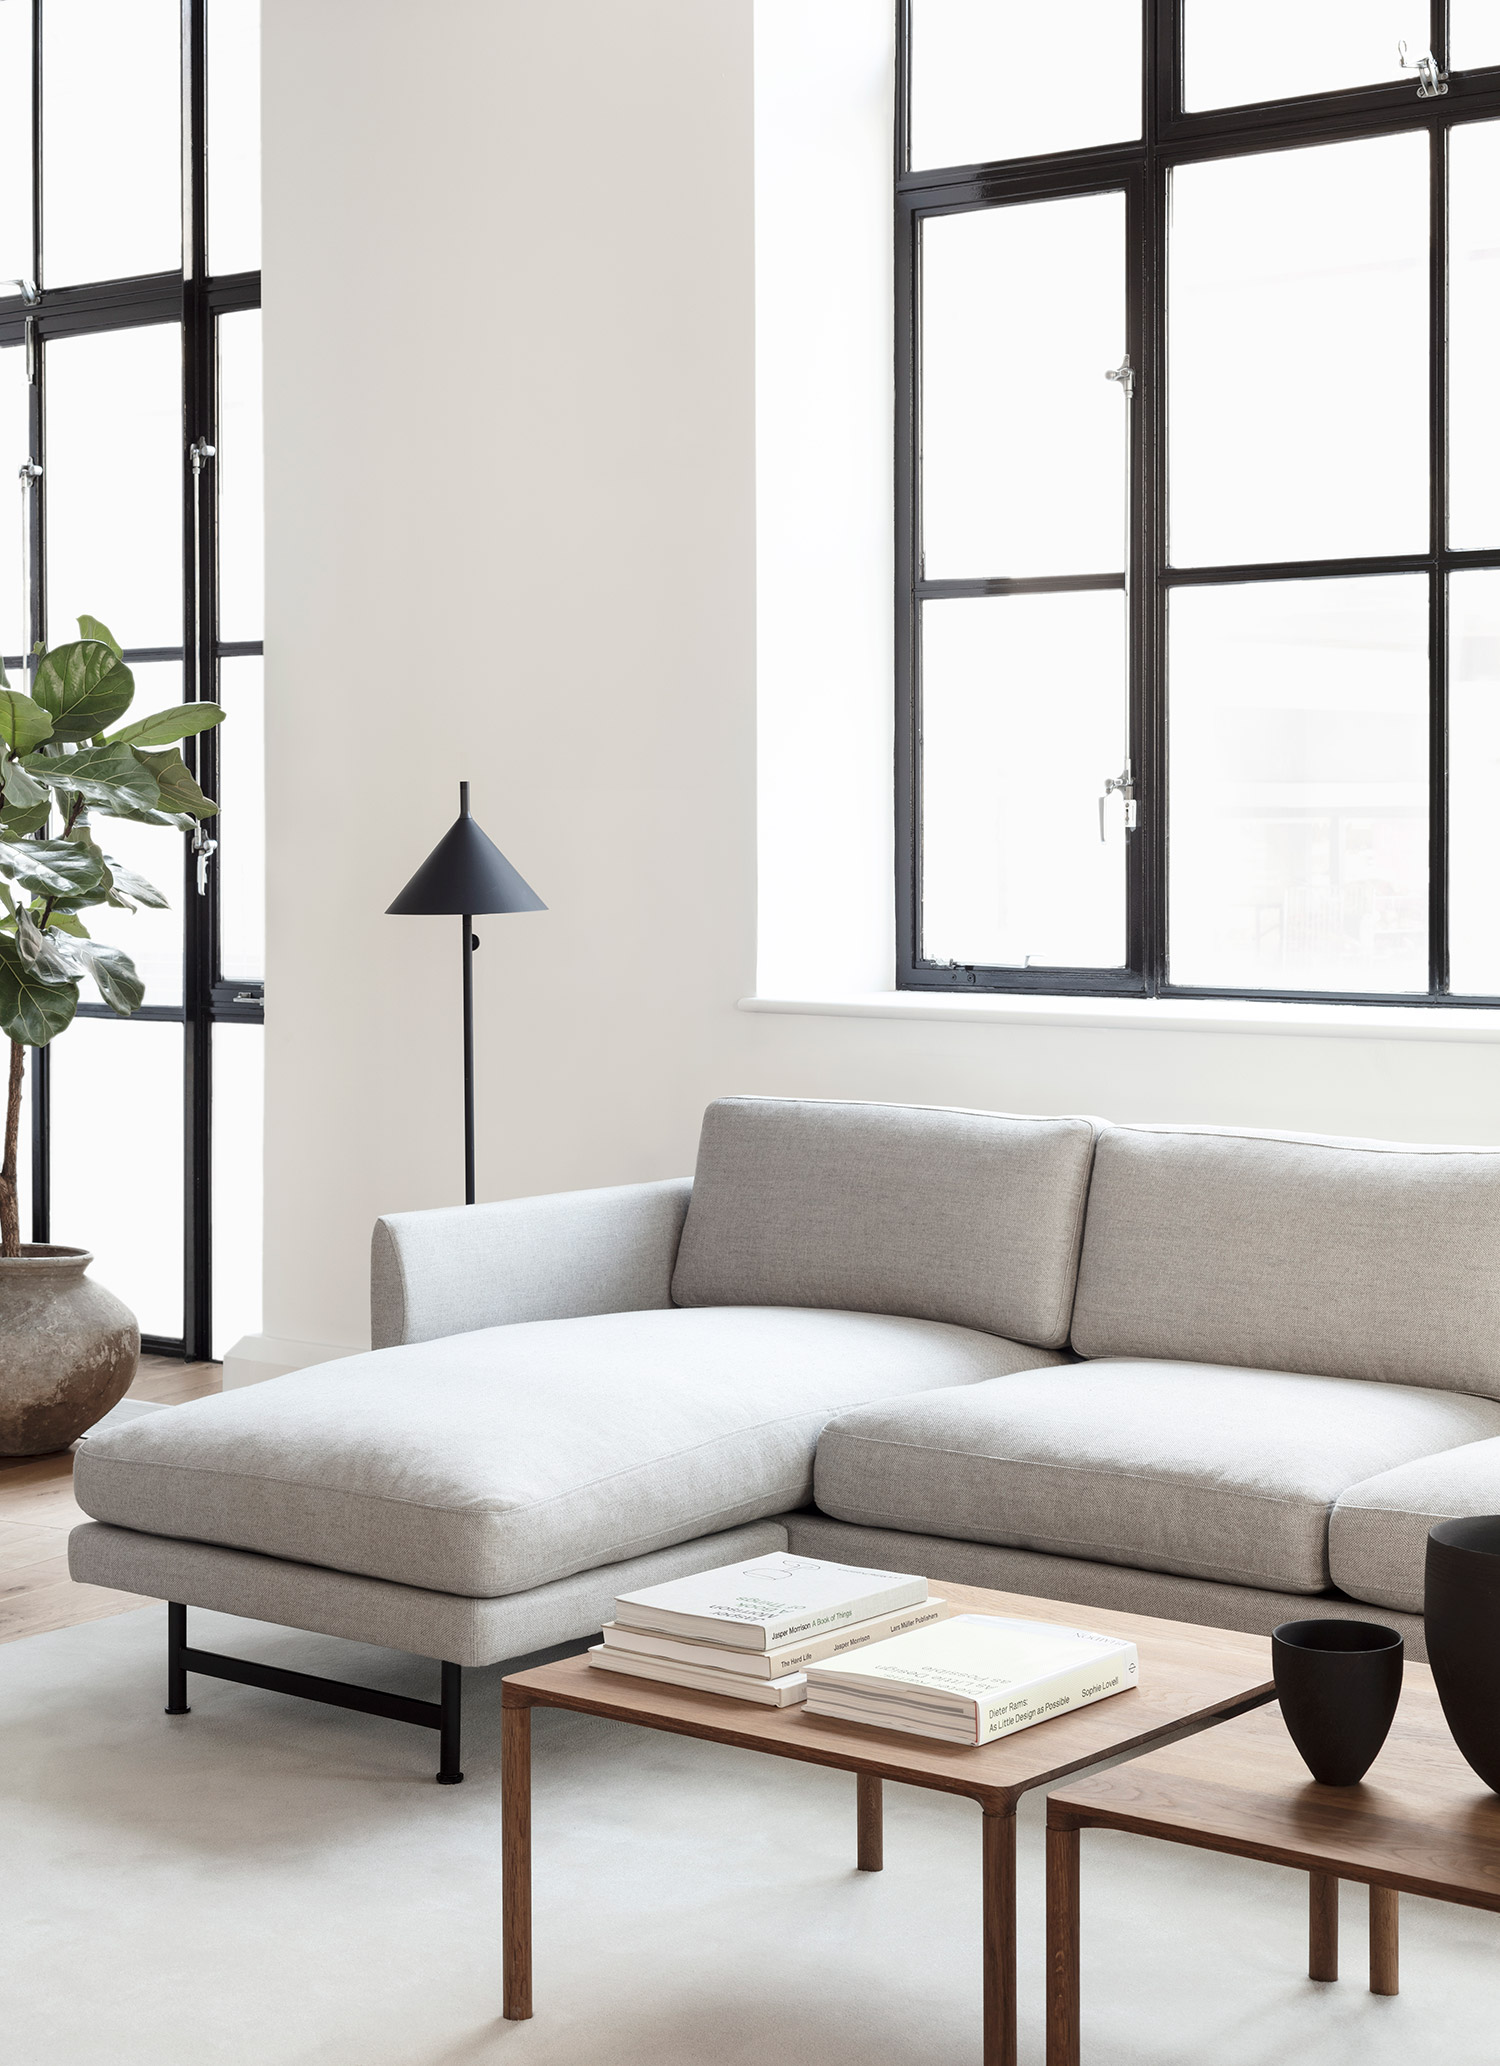 Fredericia Calmo fabric sofa in minimal white apartment